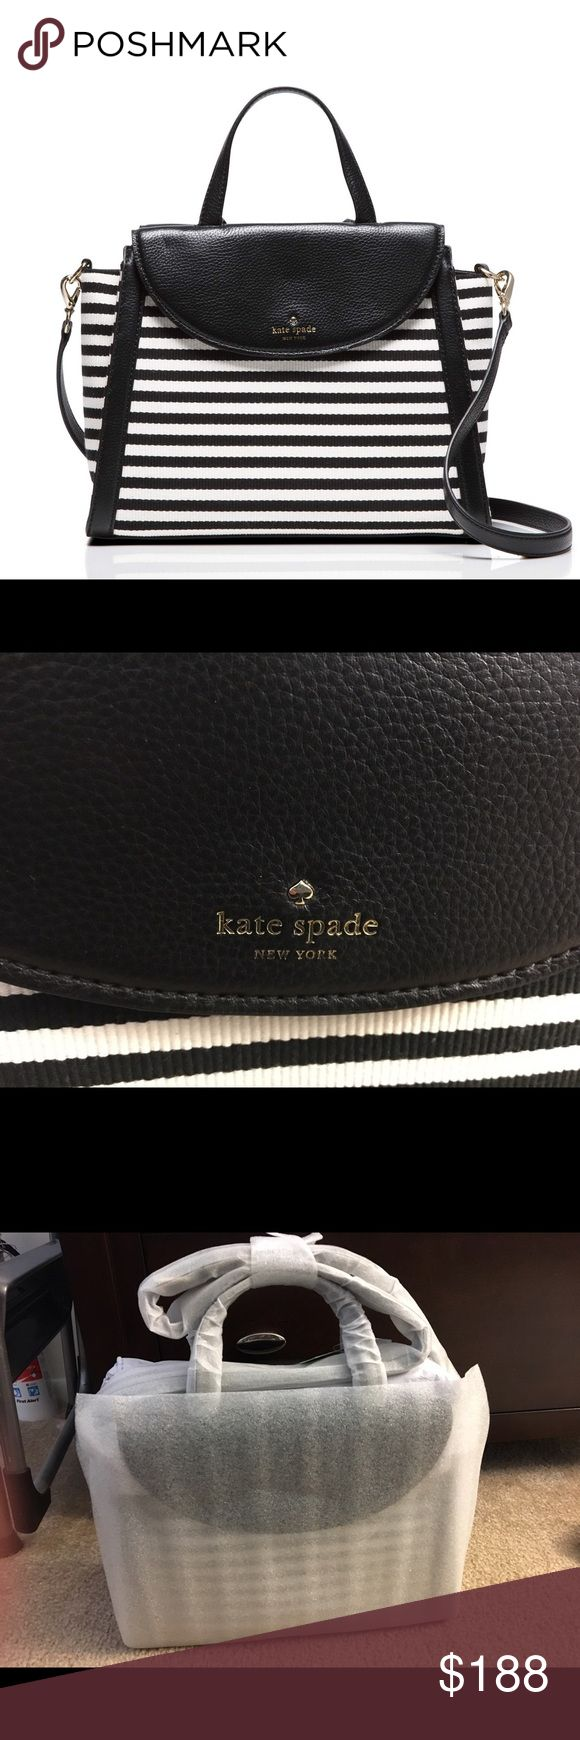 NWT Kate spade adrien style striped purse NWT in packaging, Kate spade brand adrien style purse, leather trim and cloth black and white stripes. No dust bag, Sizing info above, more photos in separate listing. No trades. kate spade Bags